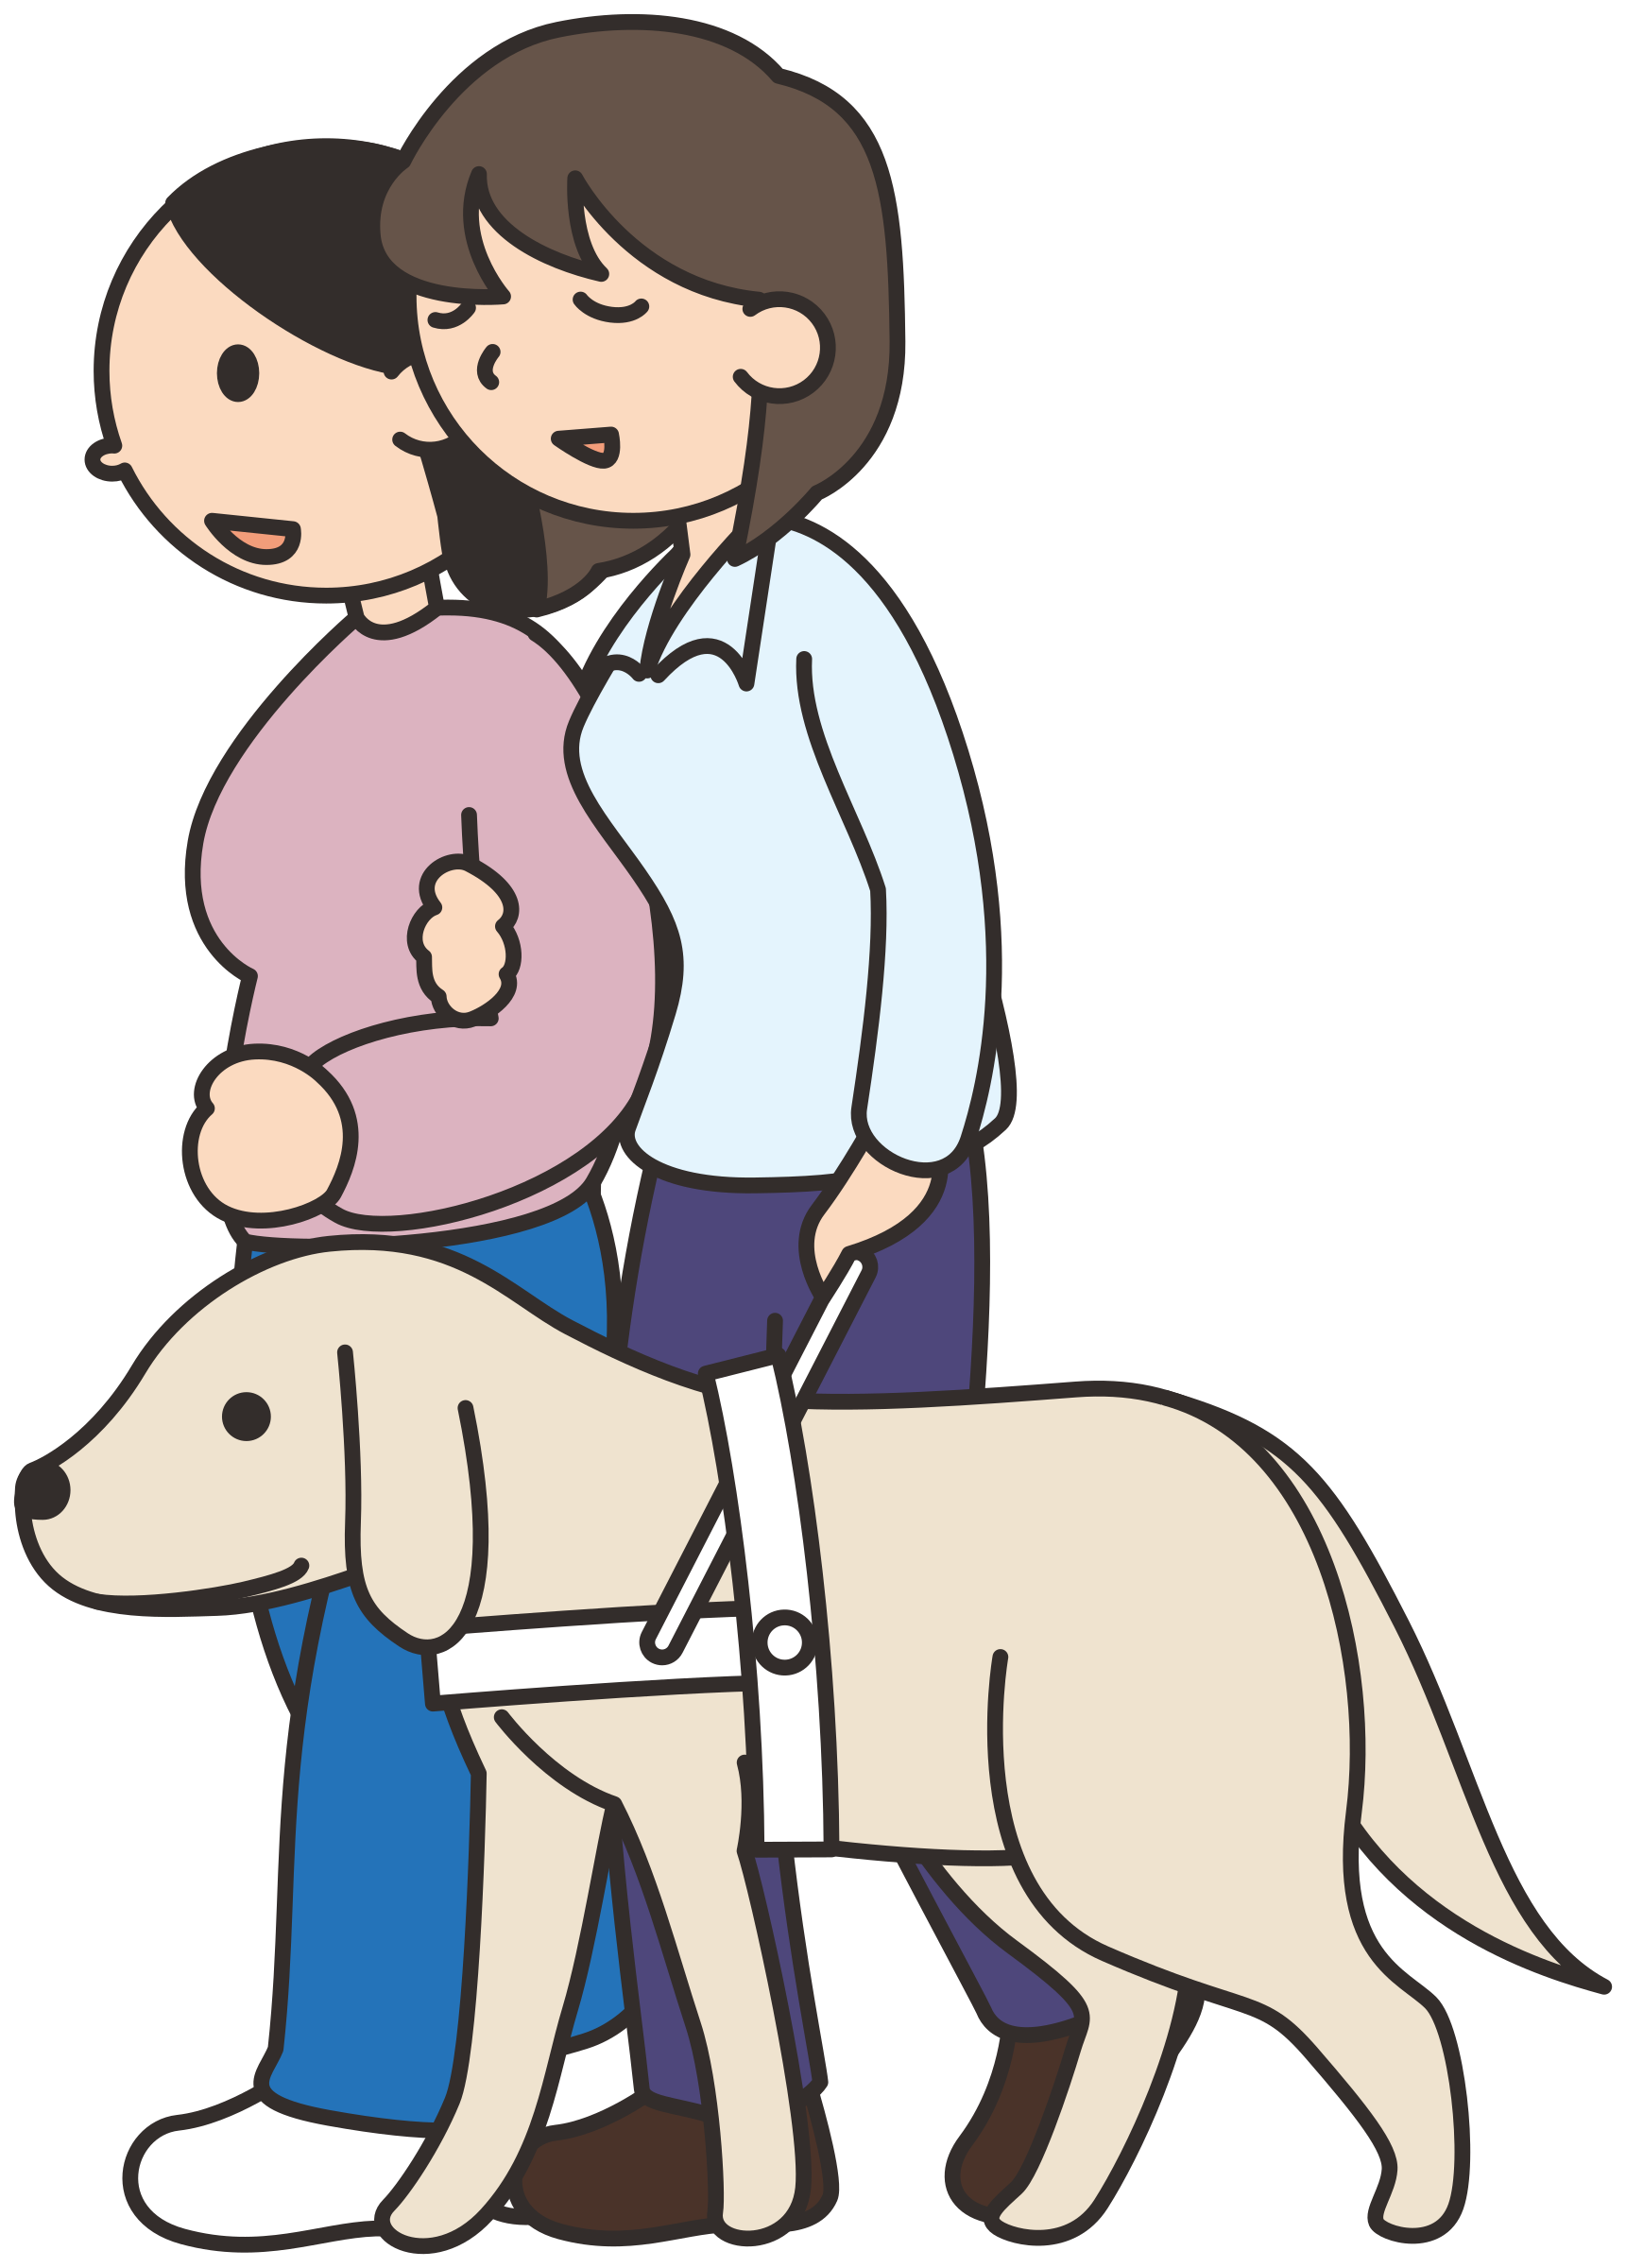 Blind dog clipart graphic freeuse download Clipart - Blind / visually impaired woman with a friend and guide dog graphic freeuse download